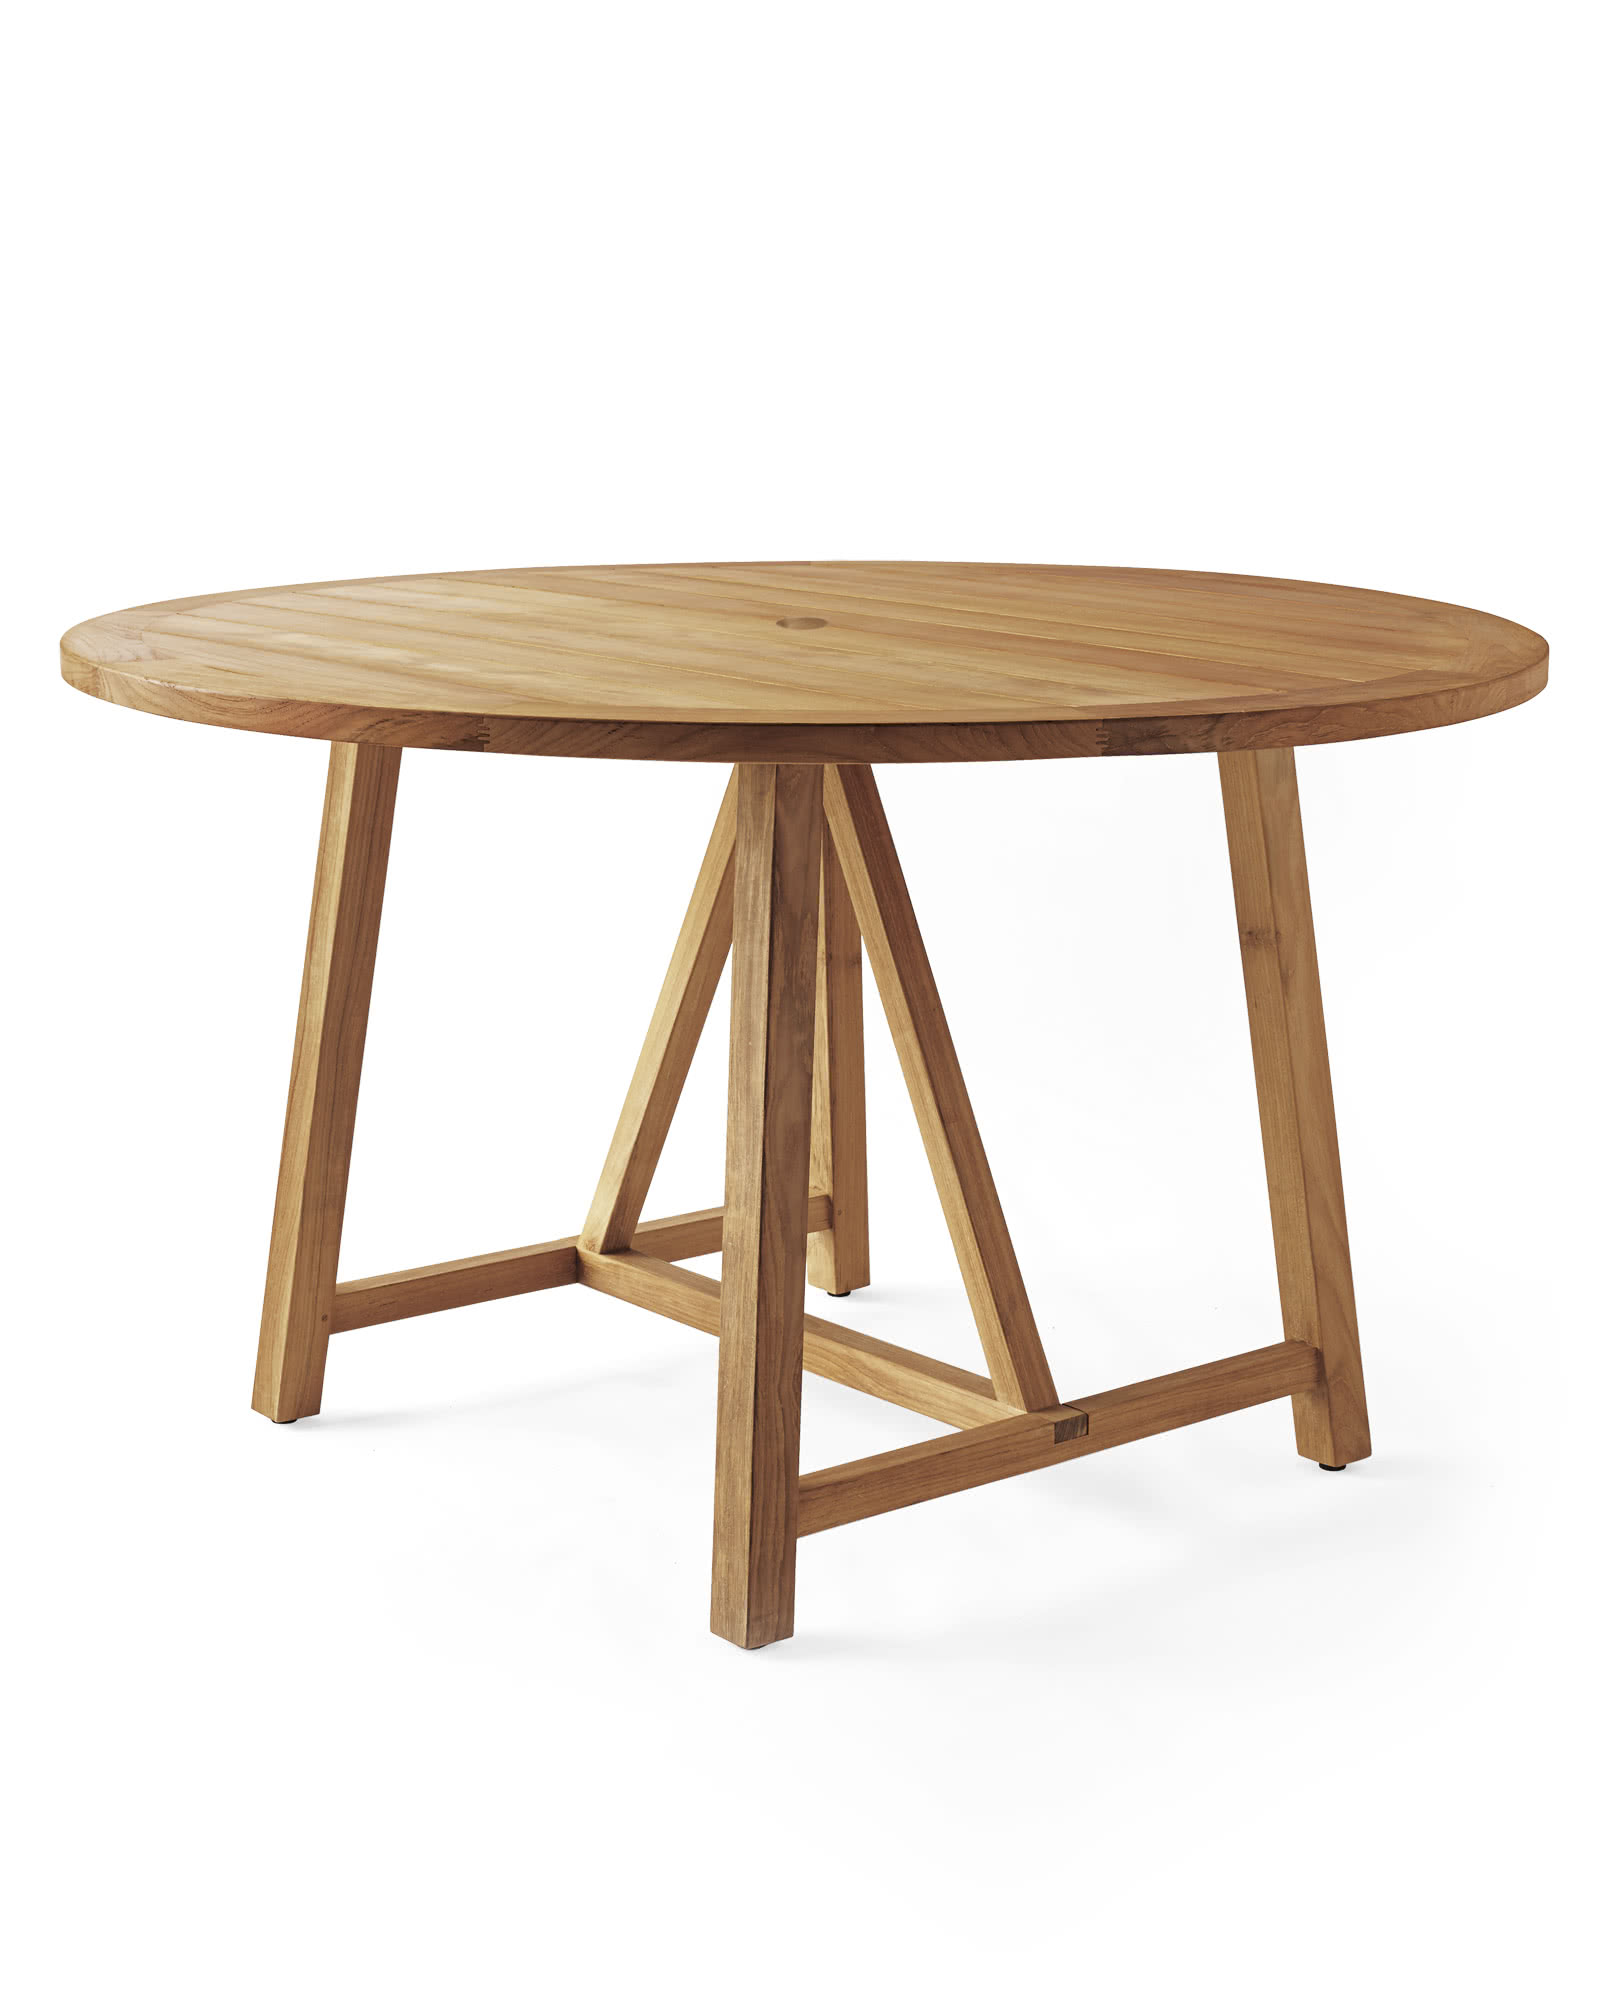 Outdoor round dining table - Crosby Teak Outdoor Round Dining Table